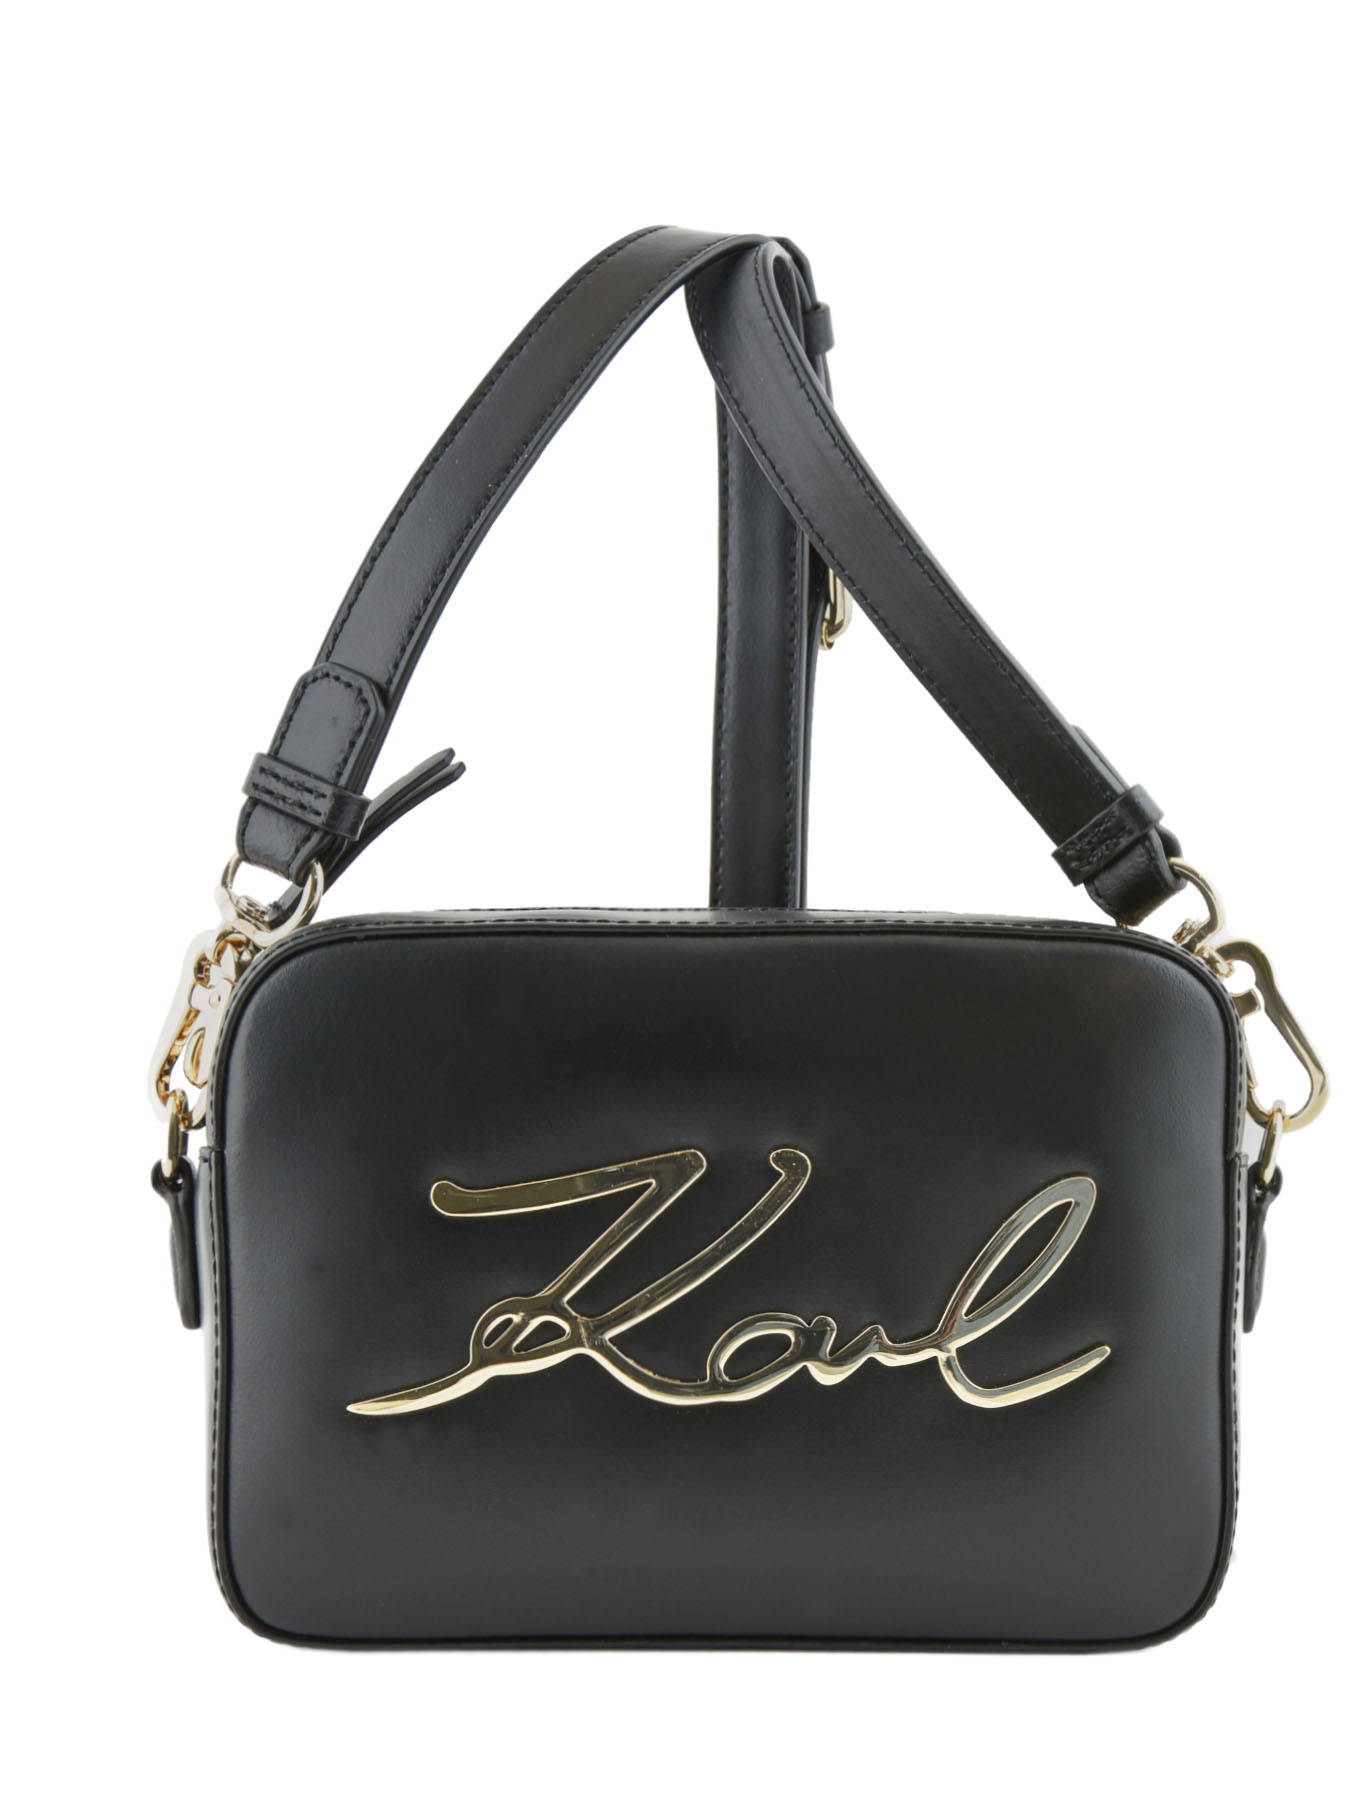 a2ec6ff820 ... Crossbody Bag K Signature Leather Karl lagerfeld Black k signature  81KW3050 ...